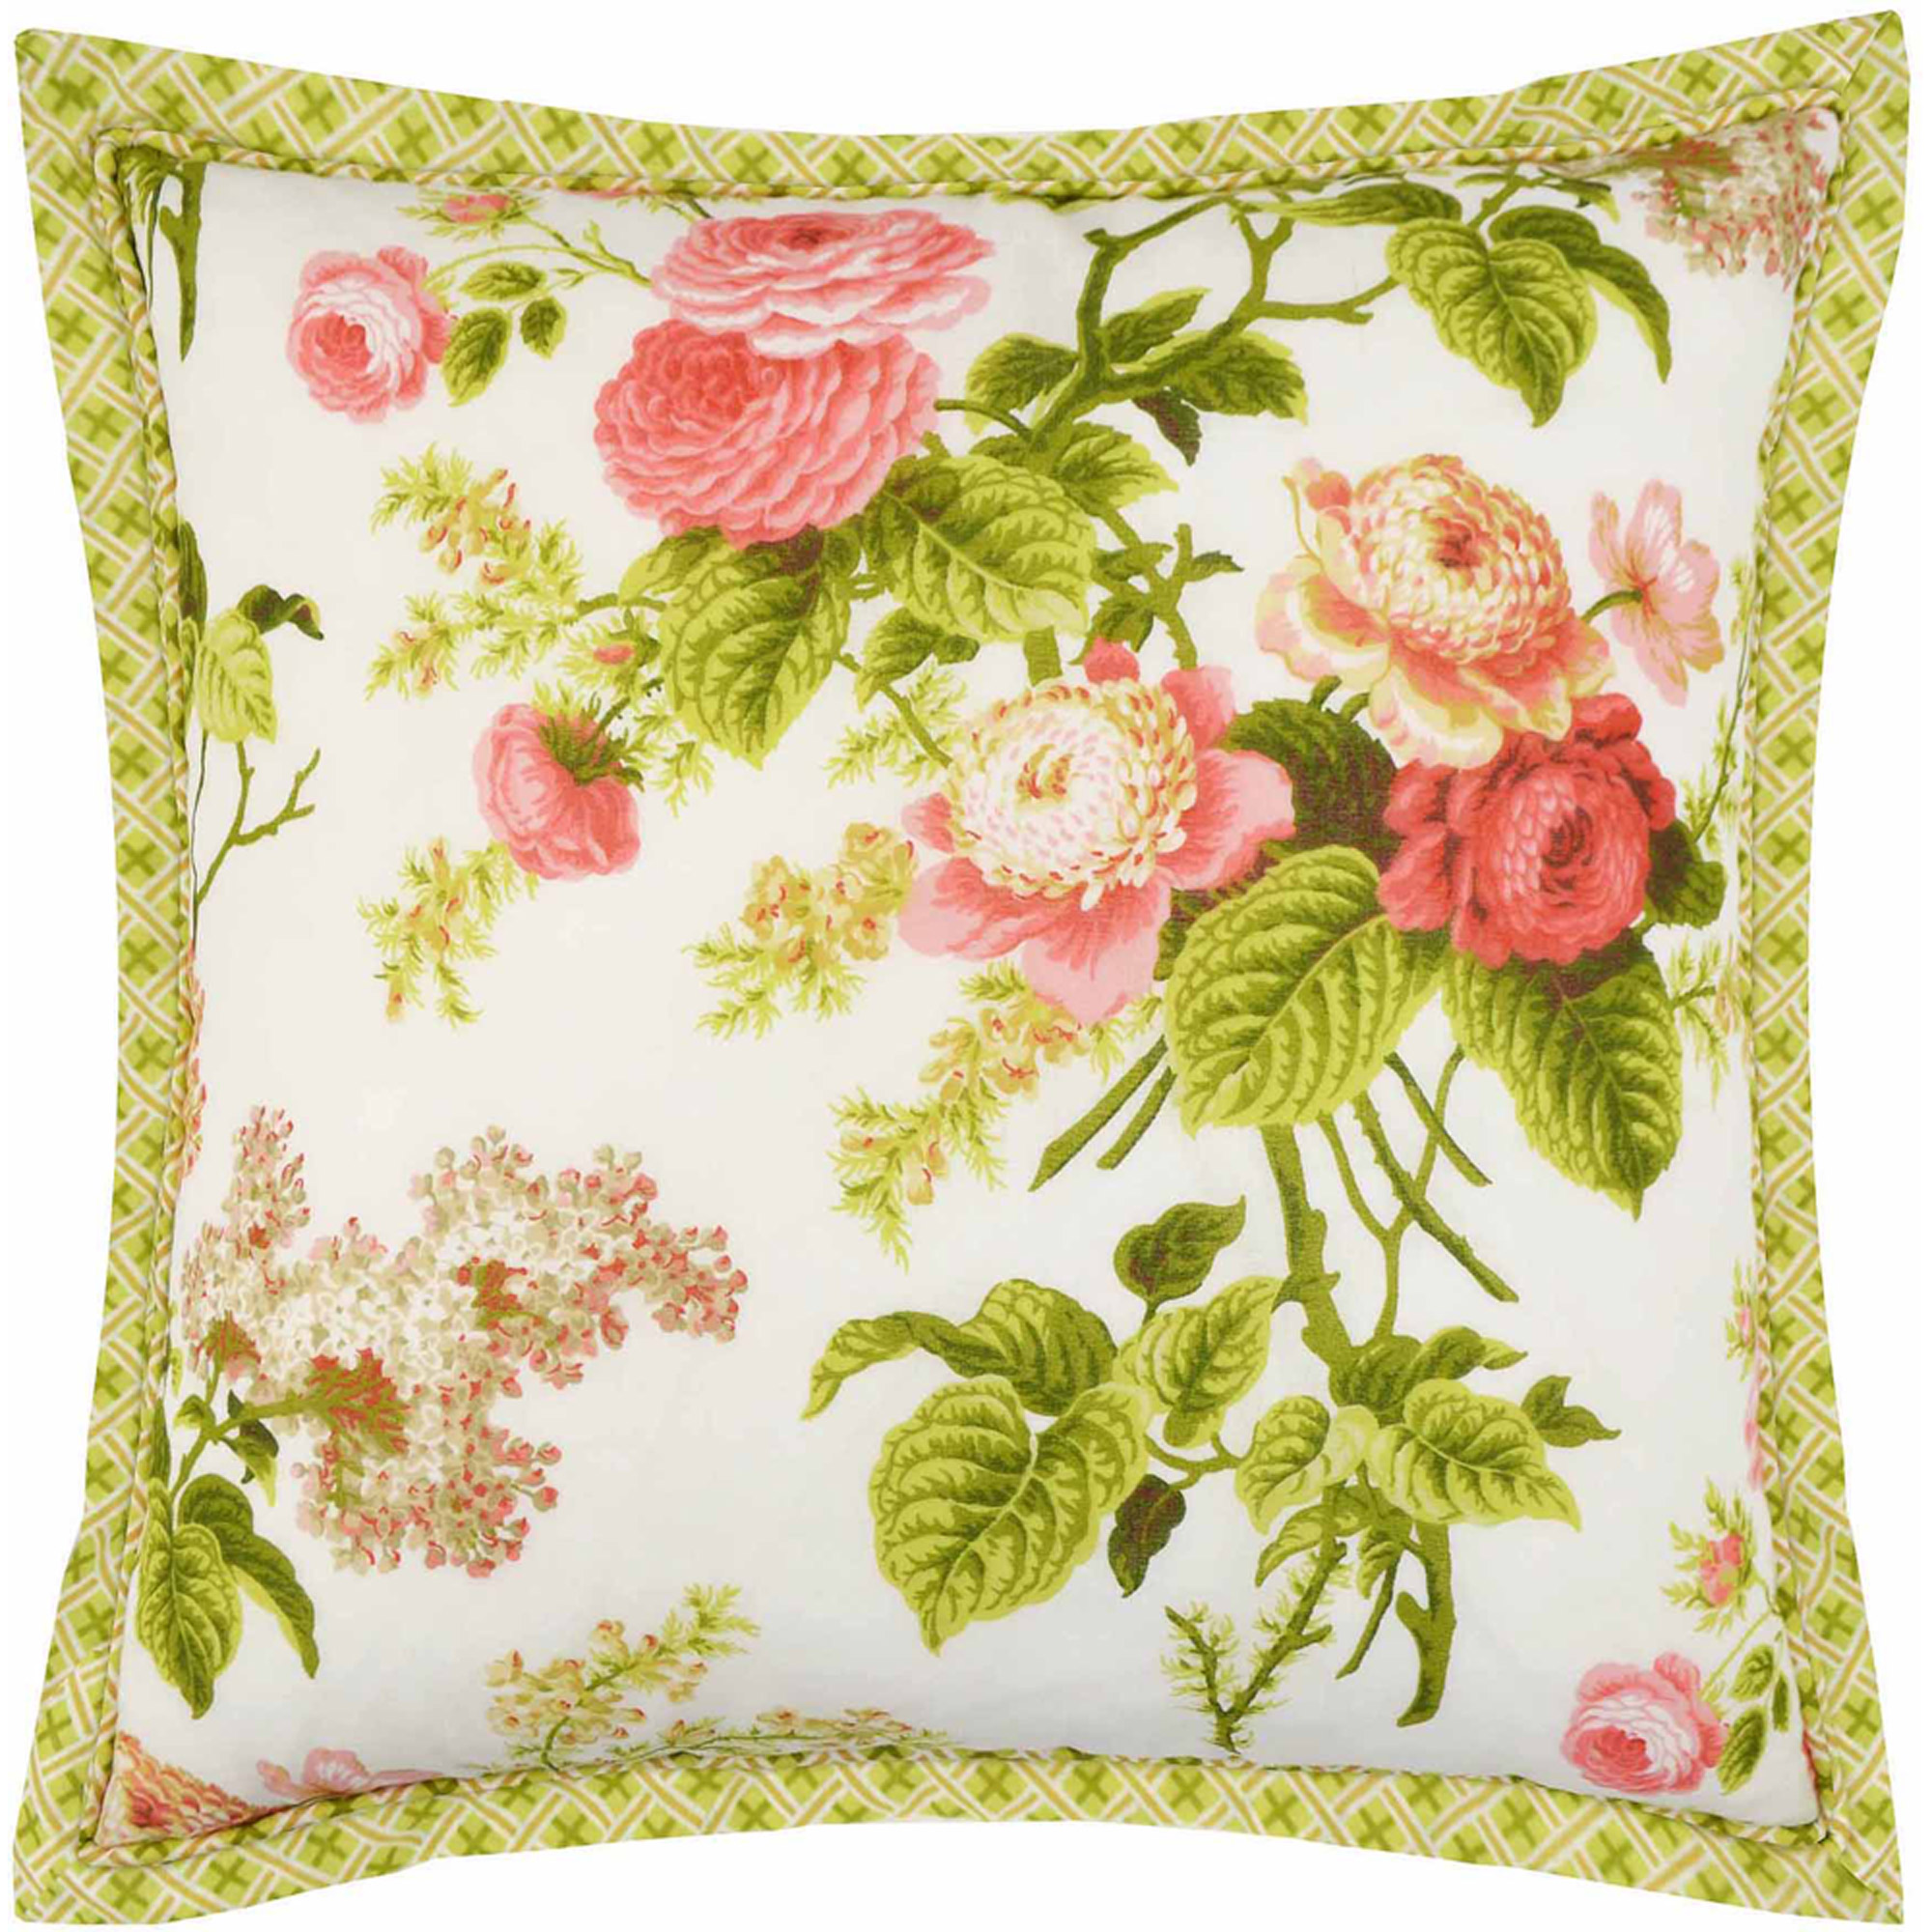 "Emma's Garden 18"" x 18"" Decorative Pillow"